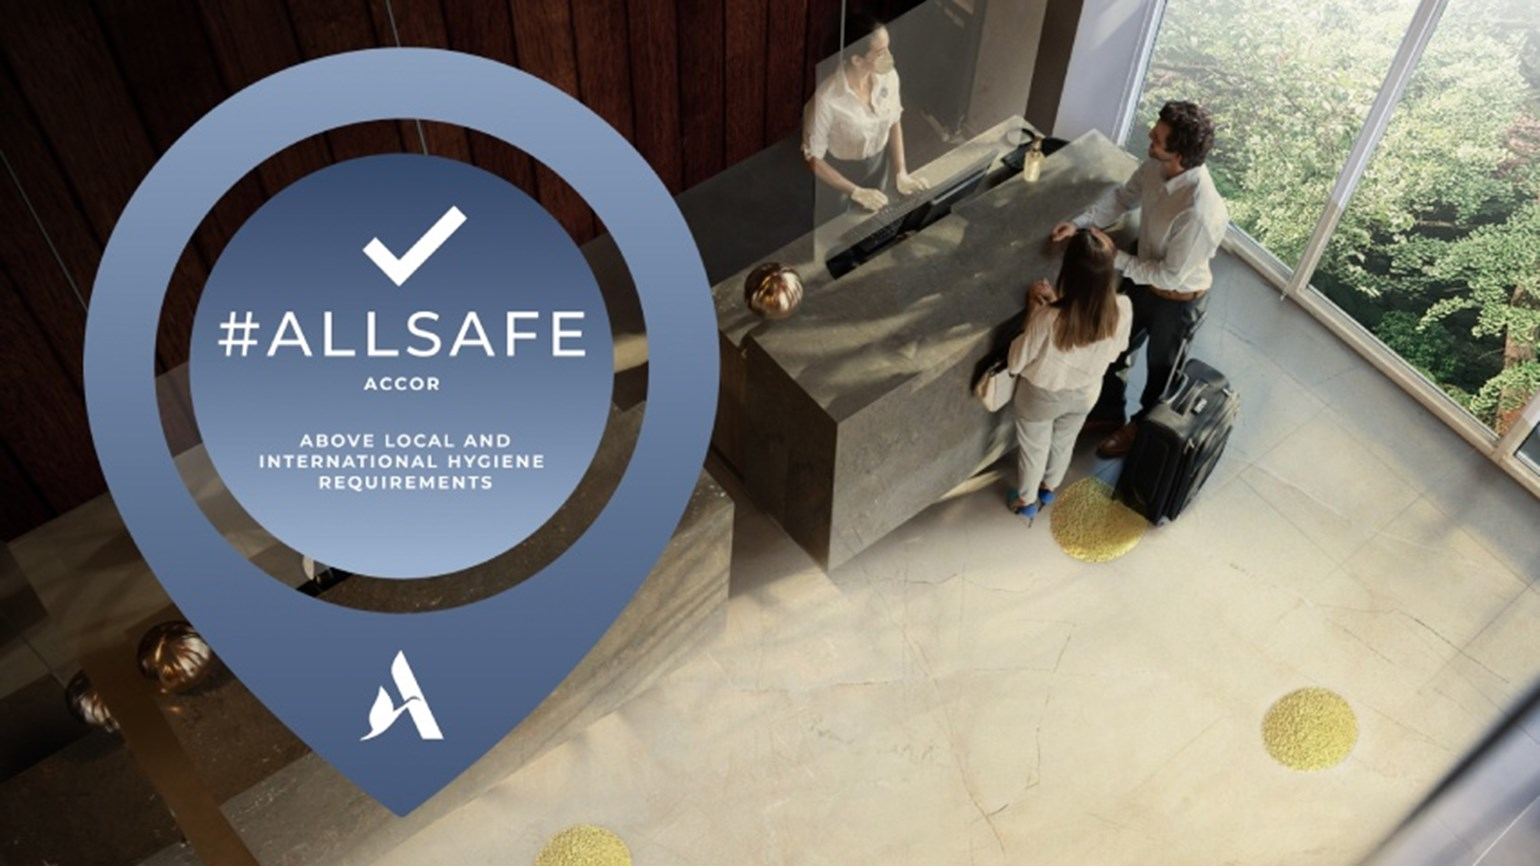 Accor ALLSAFE label